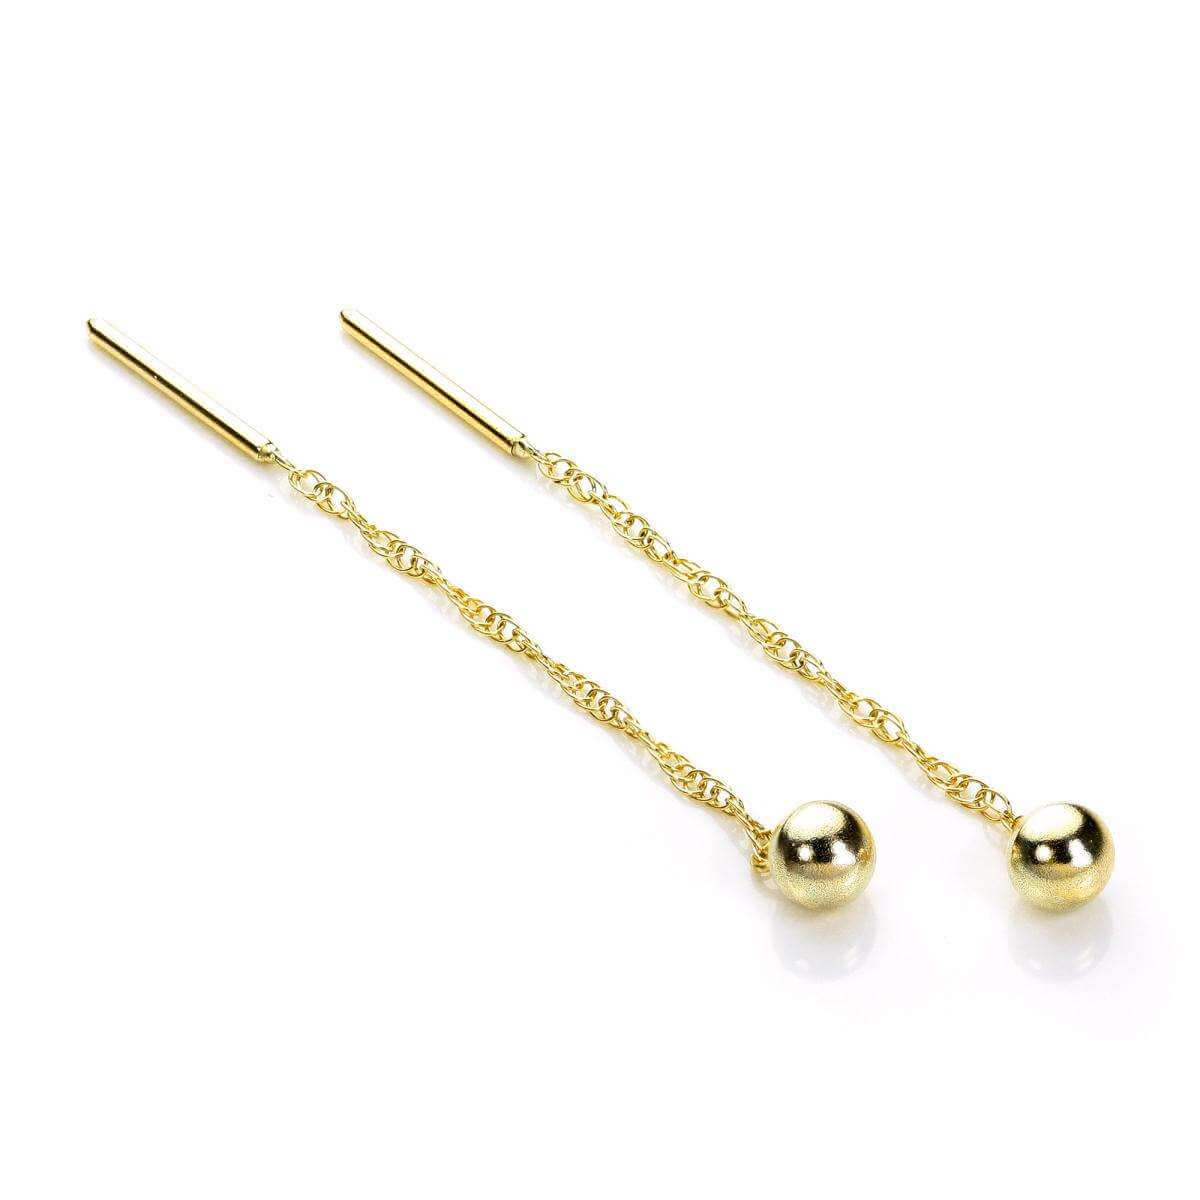 9ct Yellow Gold 4mm Ball Pull Through Earrings